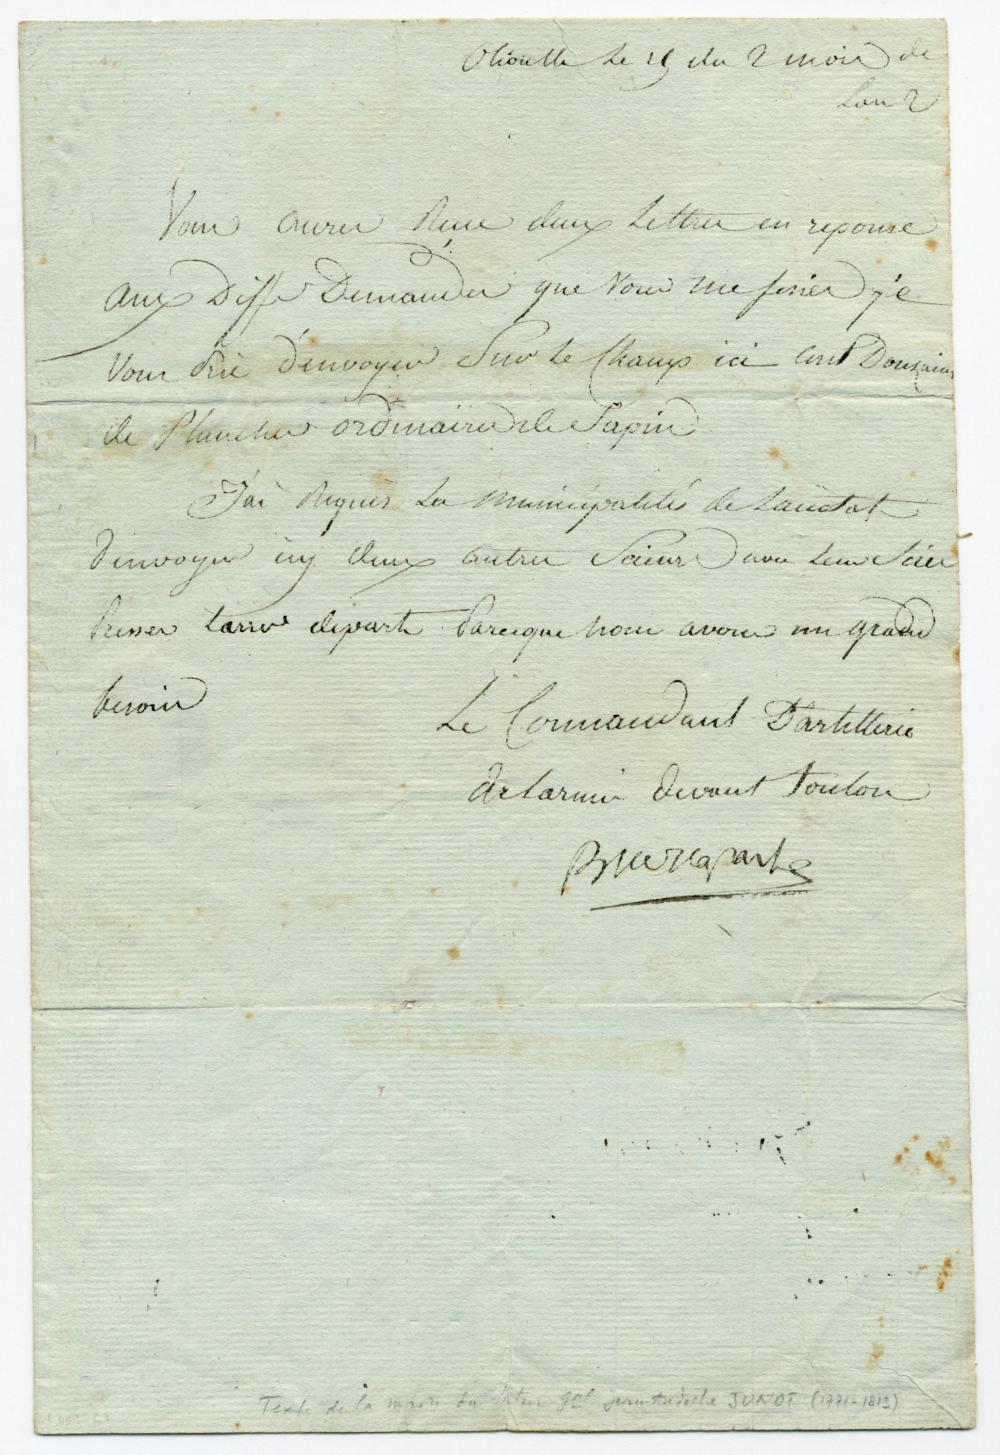 """Napoleon Bonaparte LS Requesting Supplies During Siege of Toulon, Early Signature & """"BP"""" Wax Seal, Ex-Nicholson Napoleon Collection"""